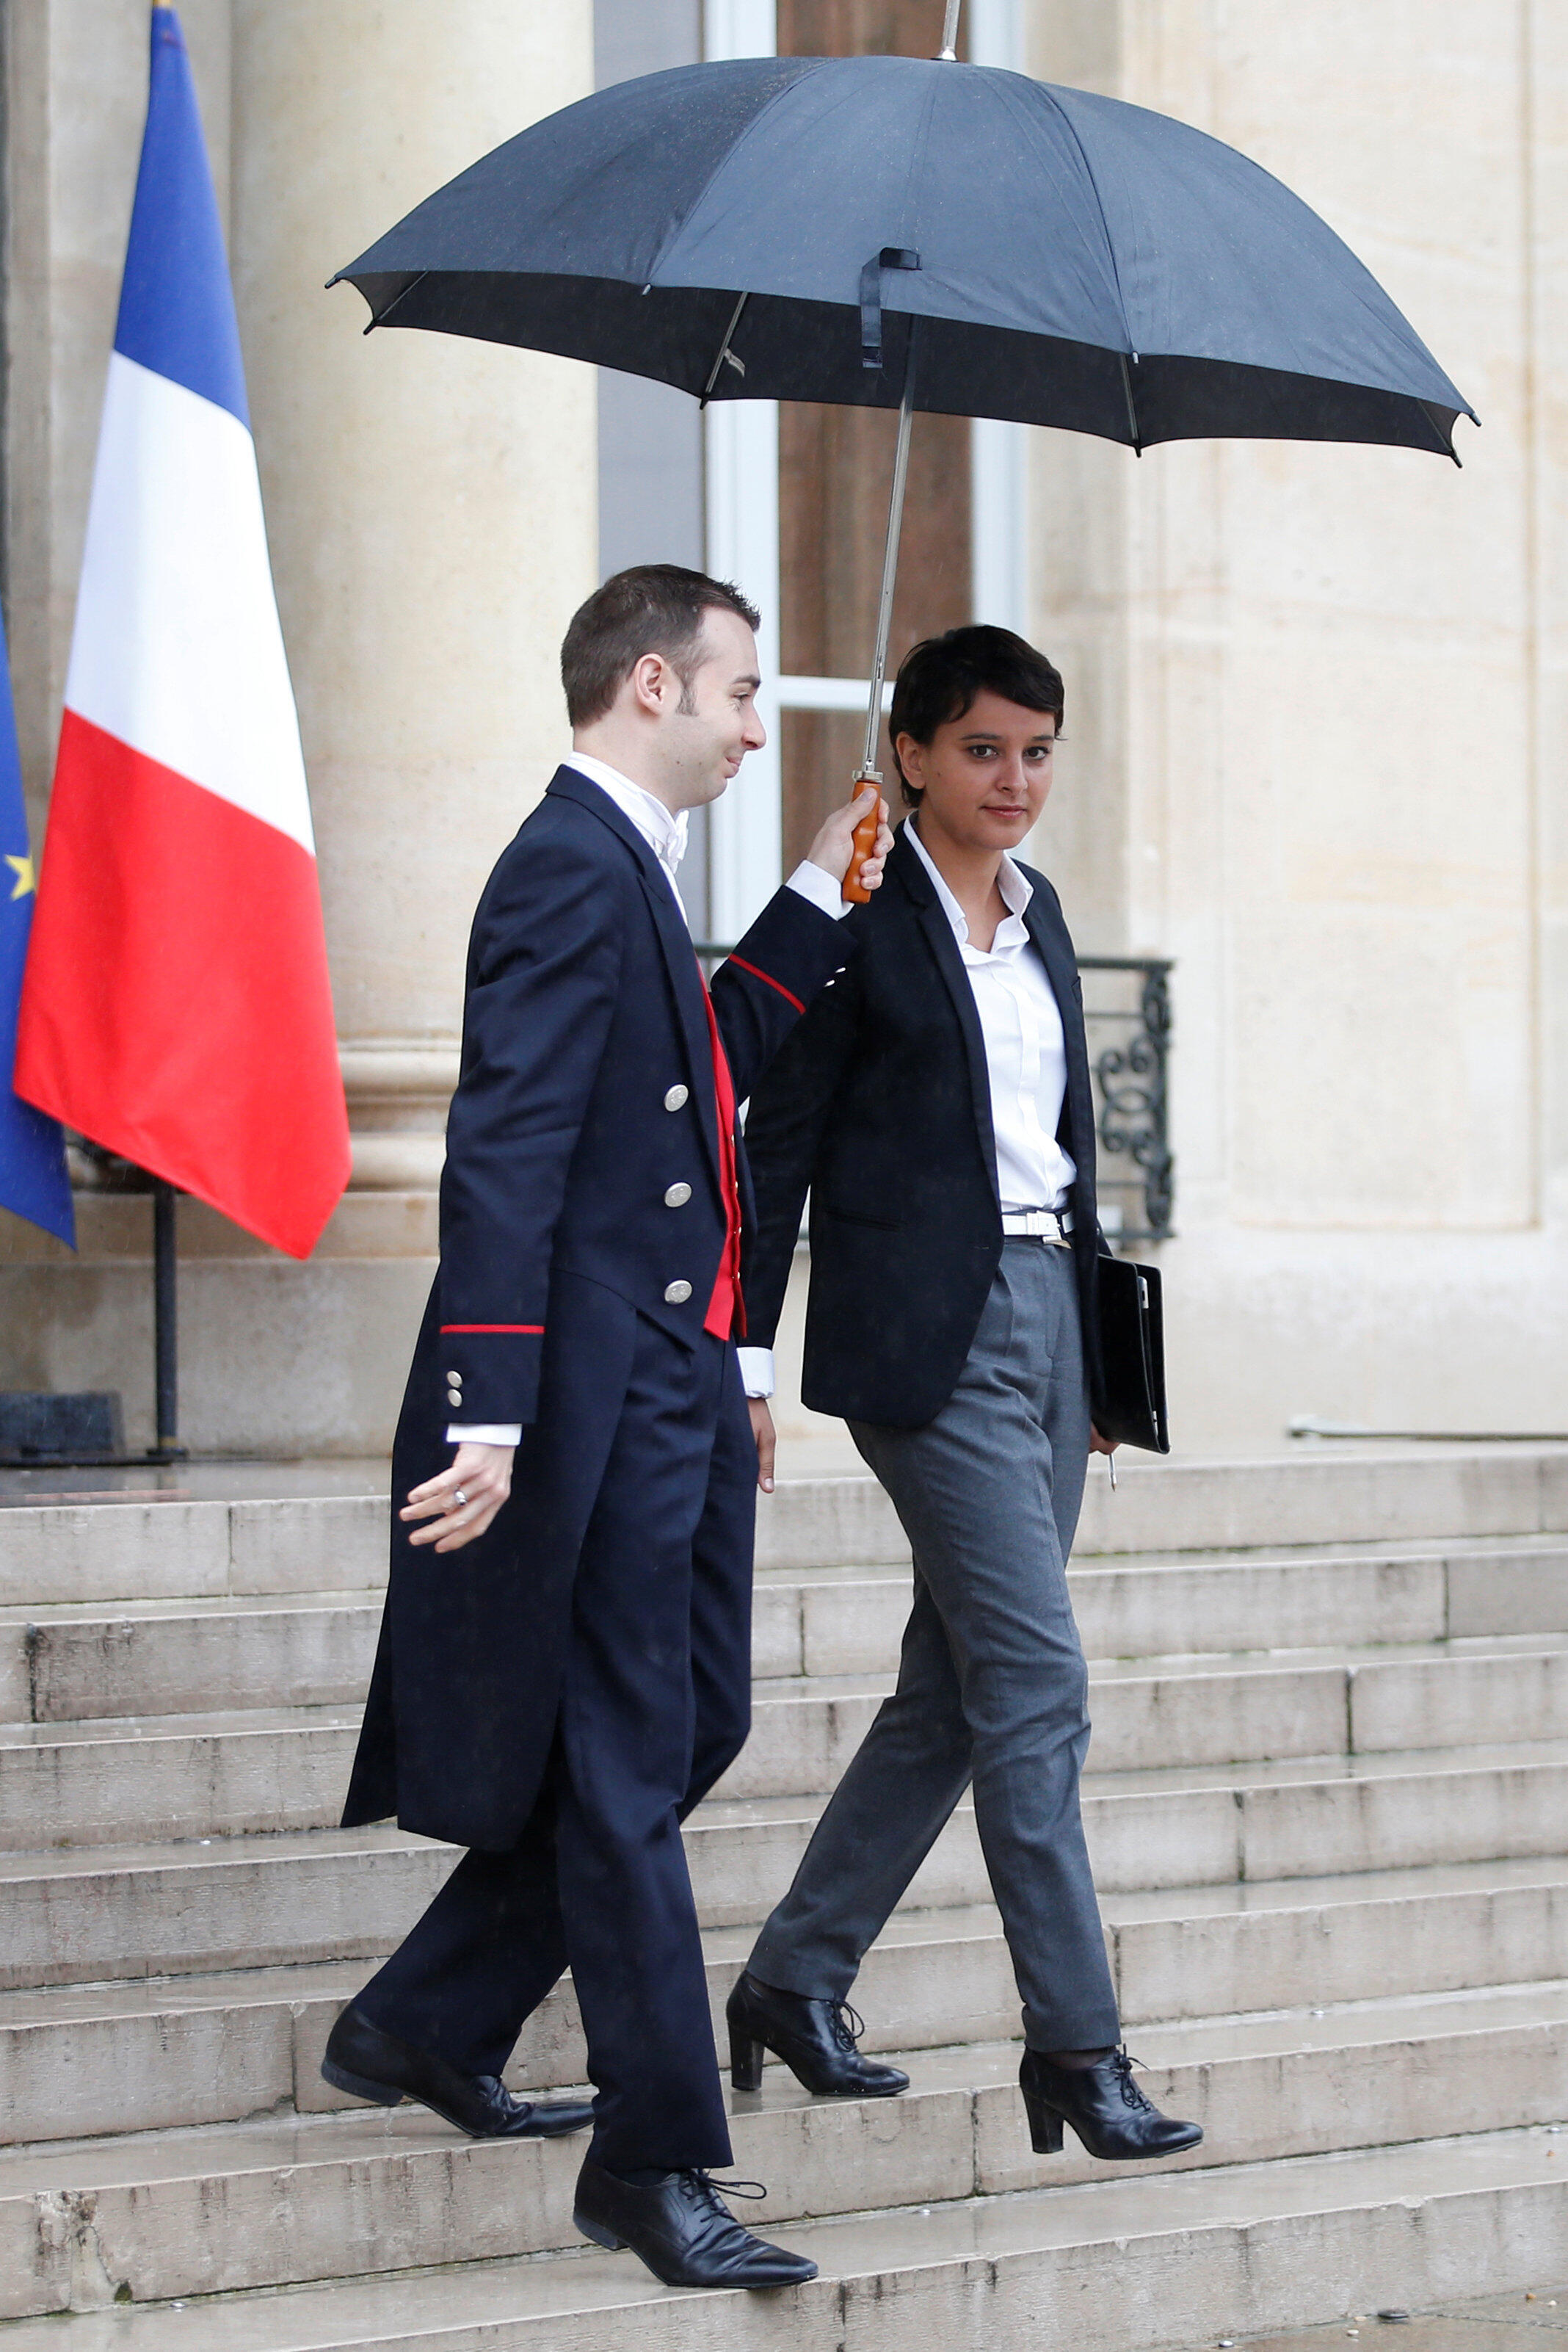 French Education minister Najat Vallaud-Belkacem leaves the Elysée Palace in Paris, France, May 30, 2016.